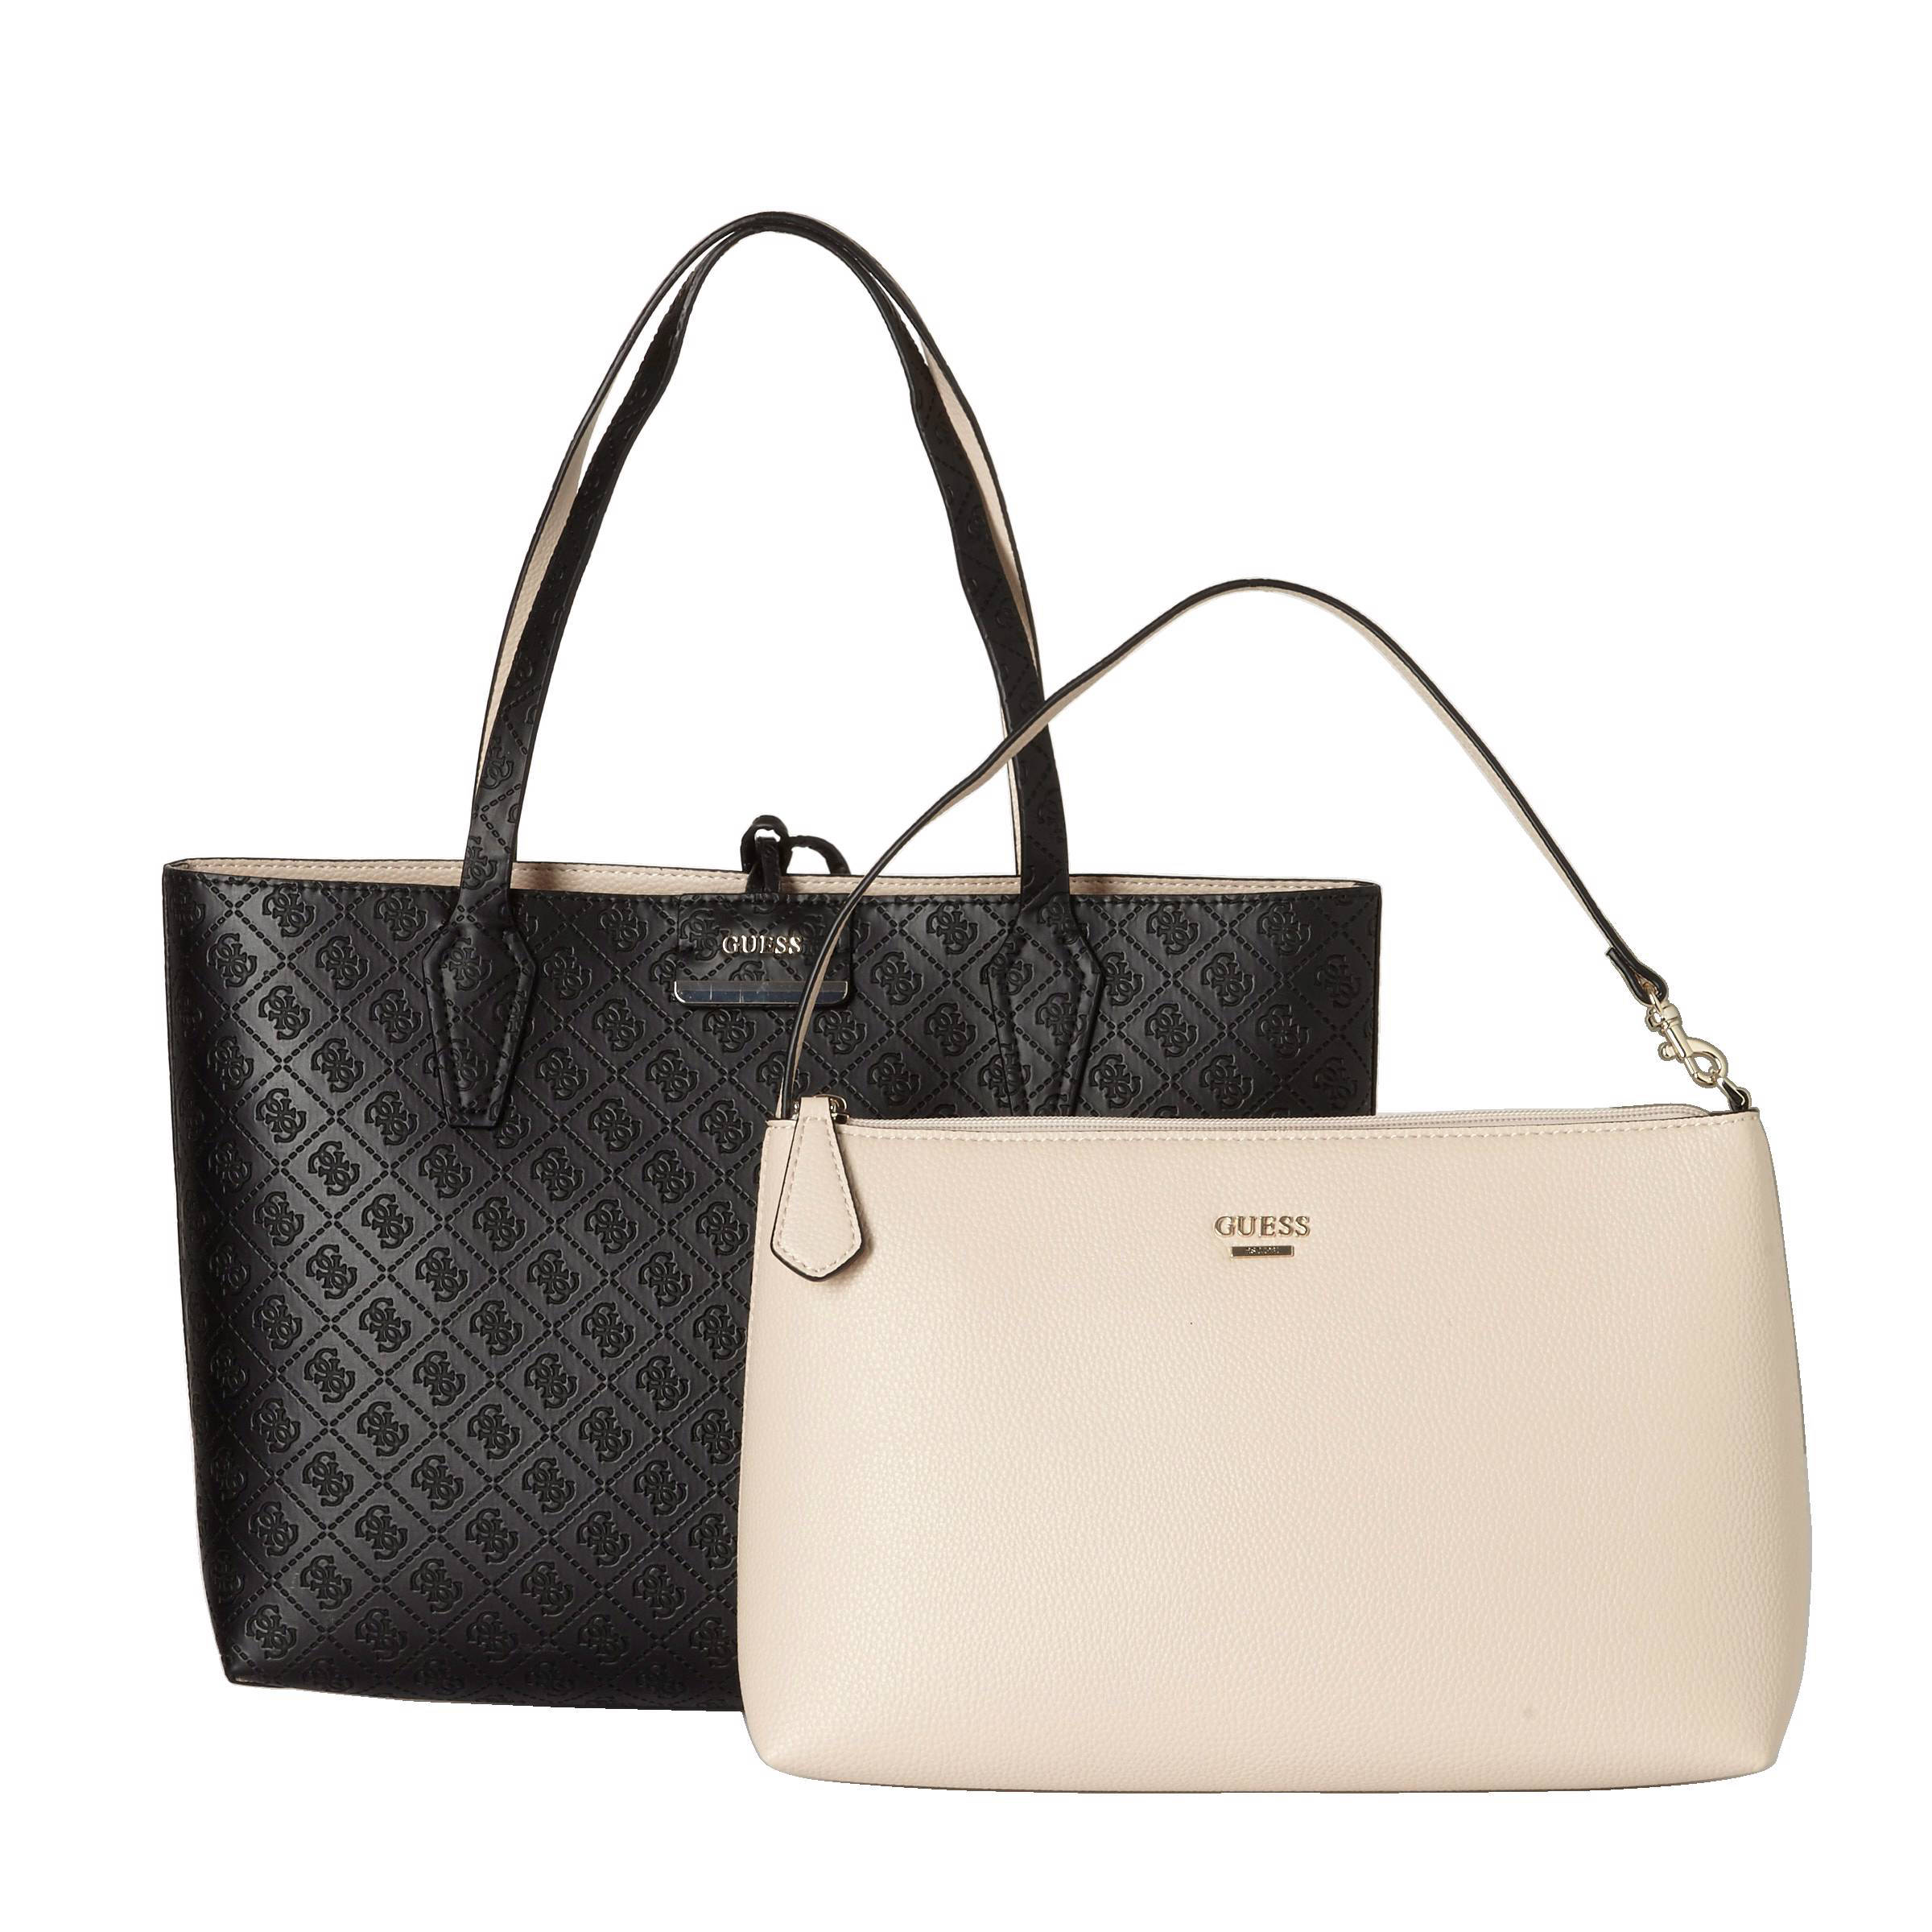 GUESS BOBBI INSIDE OUT TOTE handtas Bobbi reversible | wehkamp